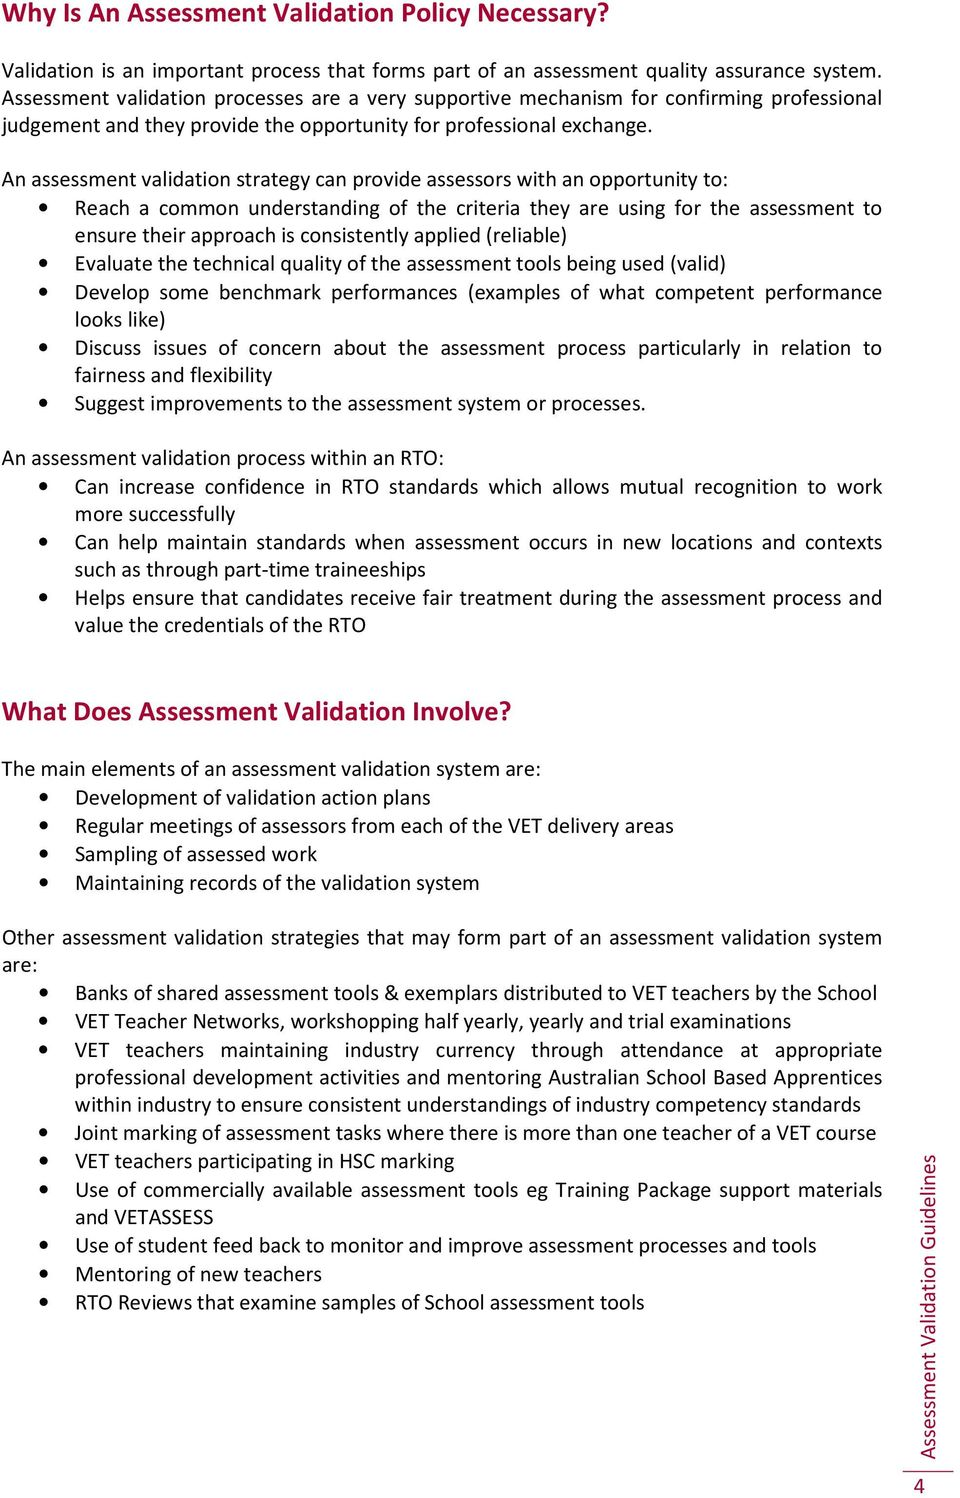 An assessment validation strategy can provide assessors with an opportunity to: Reach a common understanding of the criteria they are using for the assessment to ensure their approach is consistently